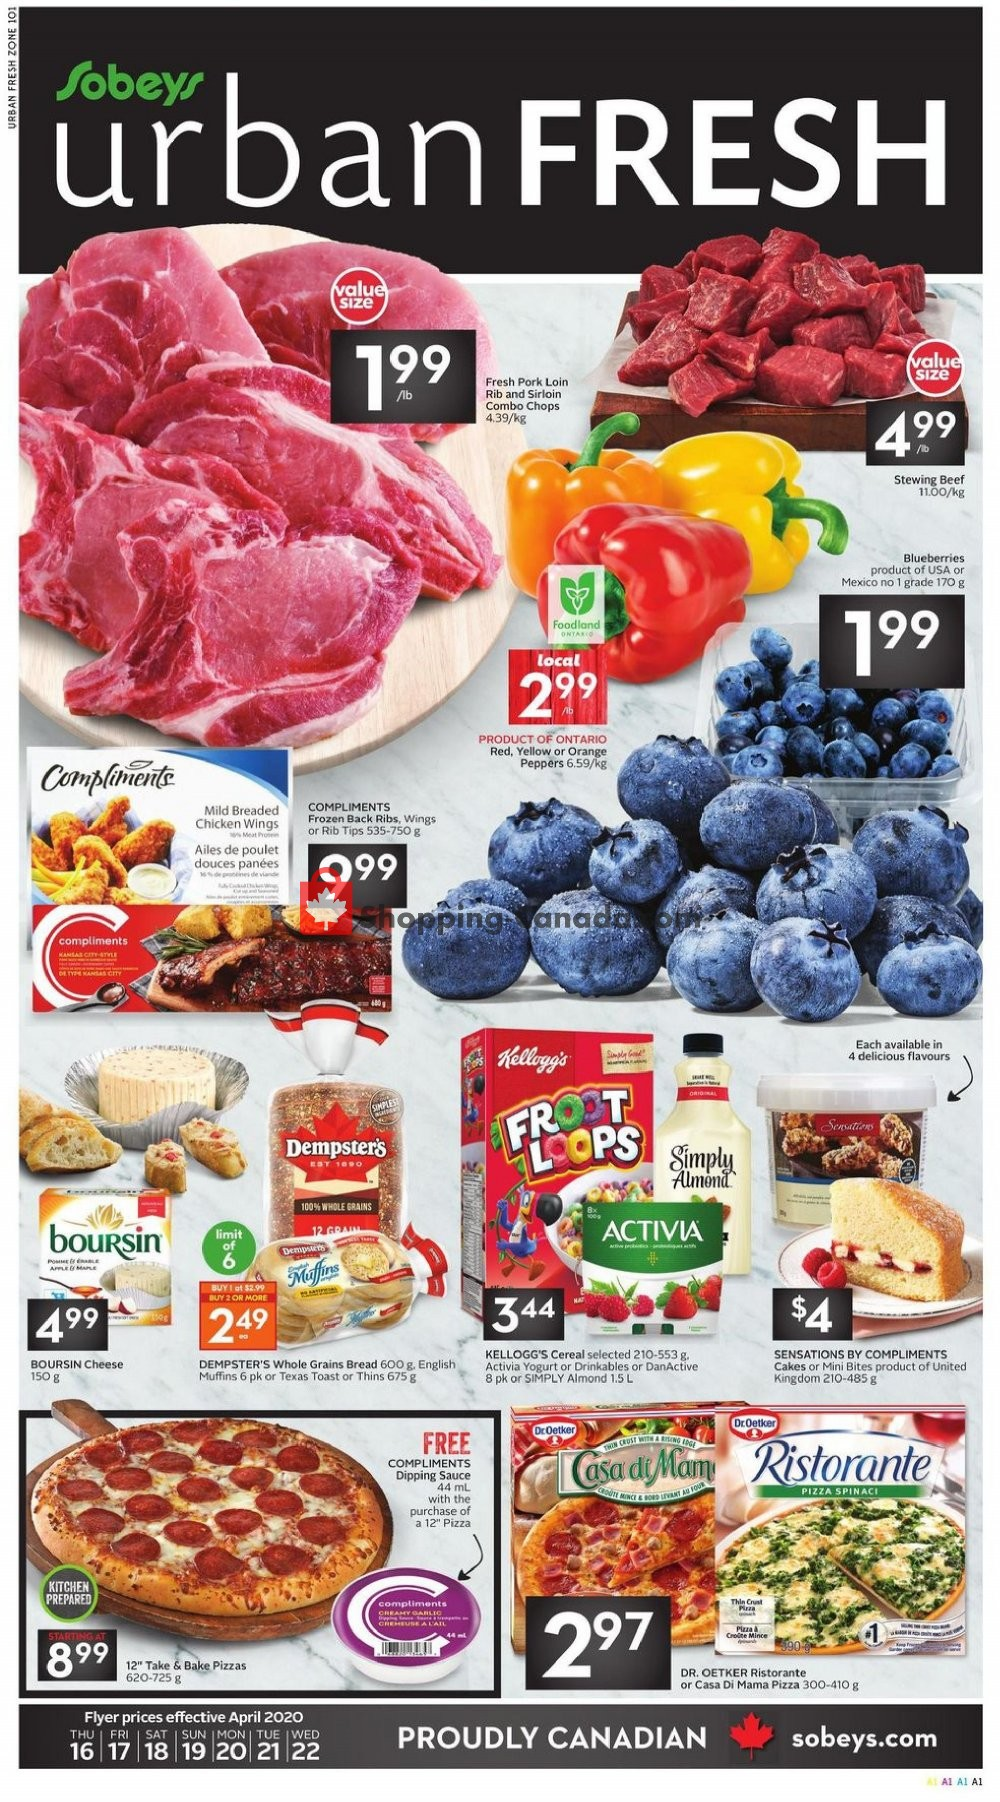 Flyer Sobeys Canada - from Thursday April 16, 2020 to Wednesday April 22, 2020